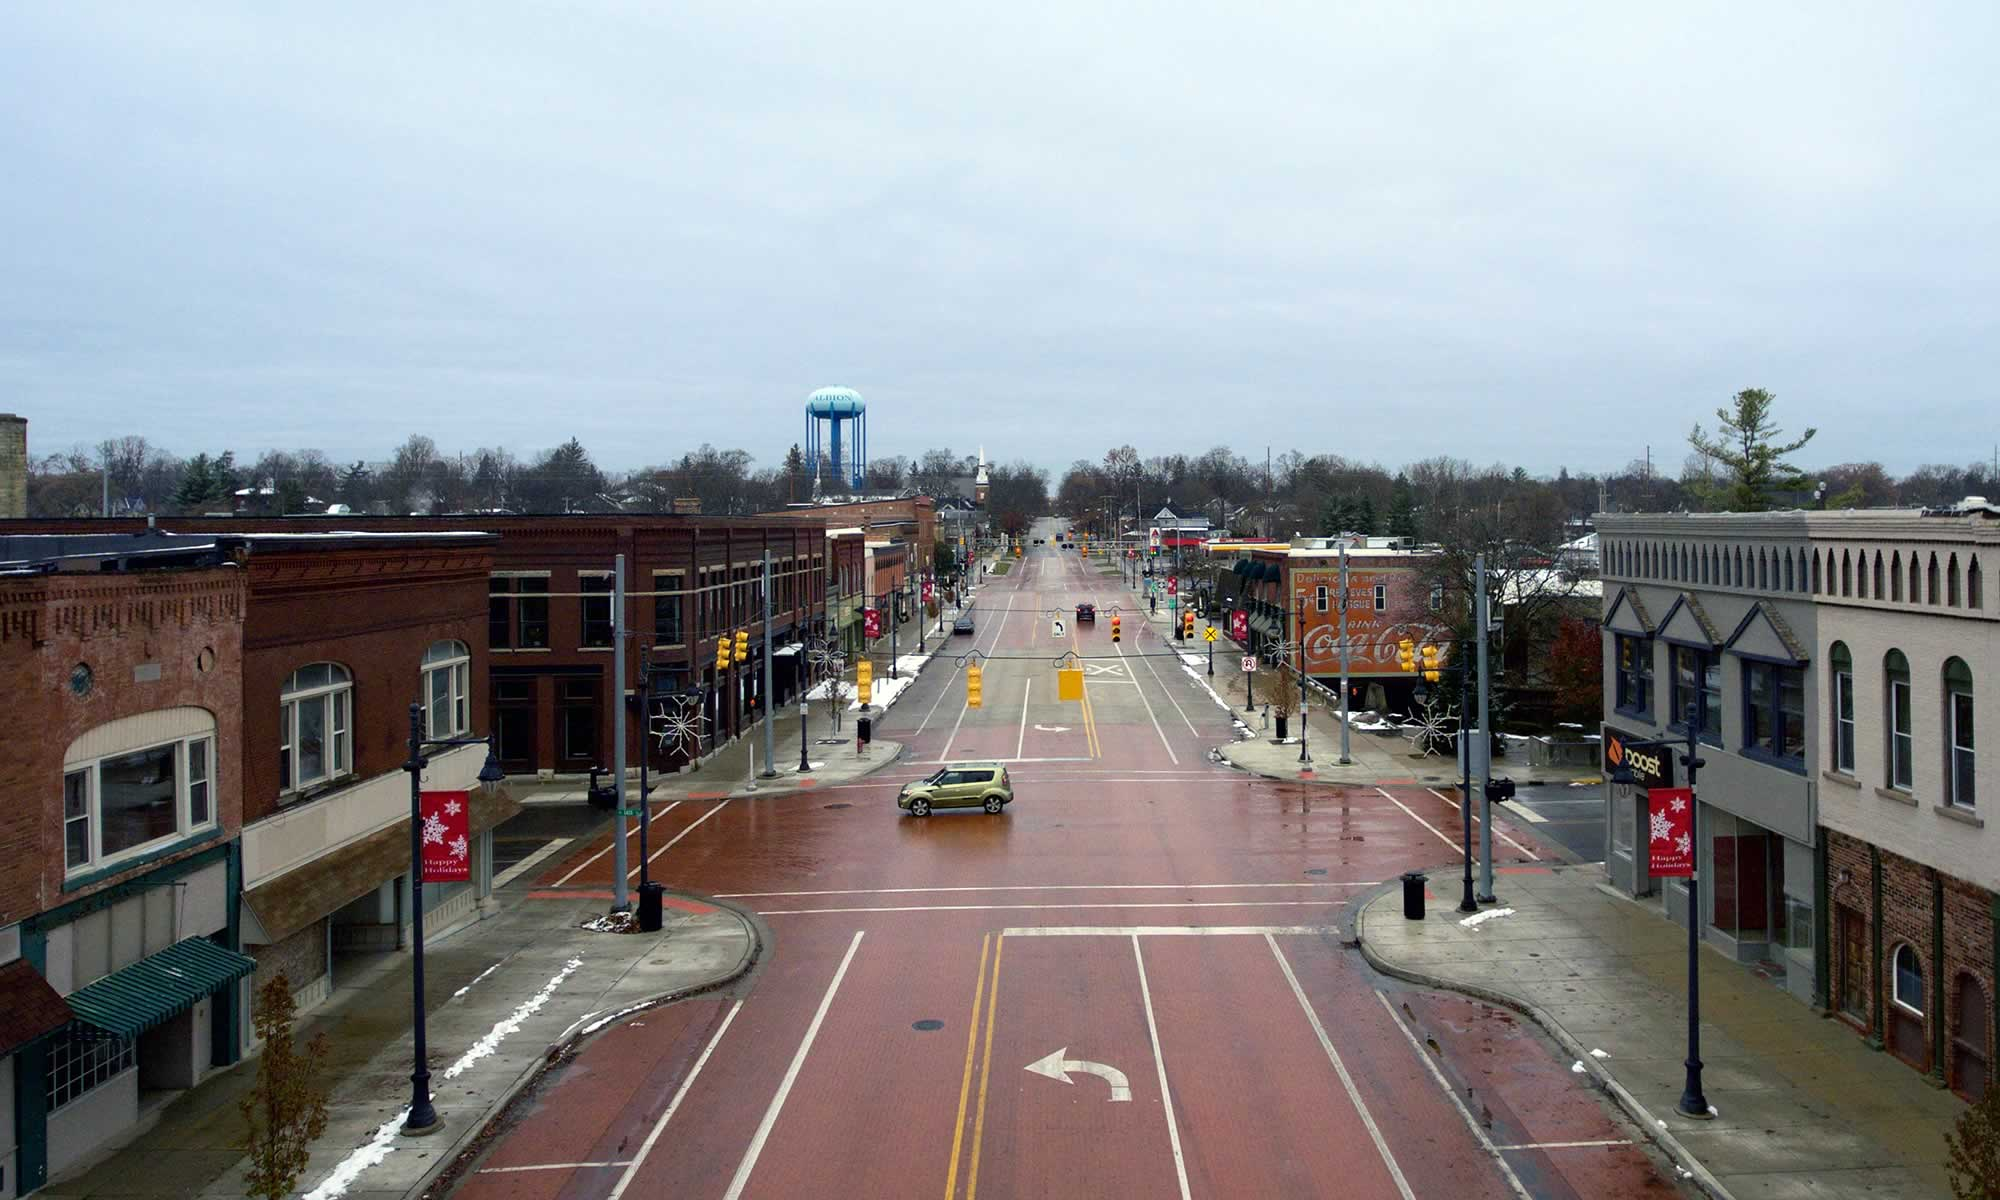 Albion, Michigan - General Guide to Arts and Trails